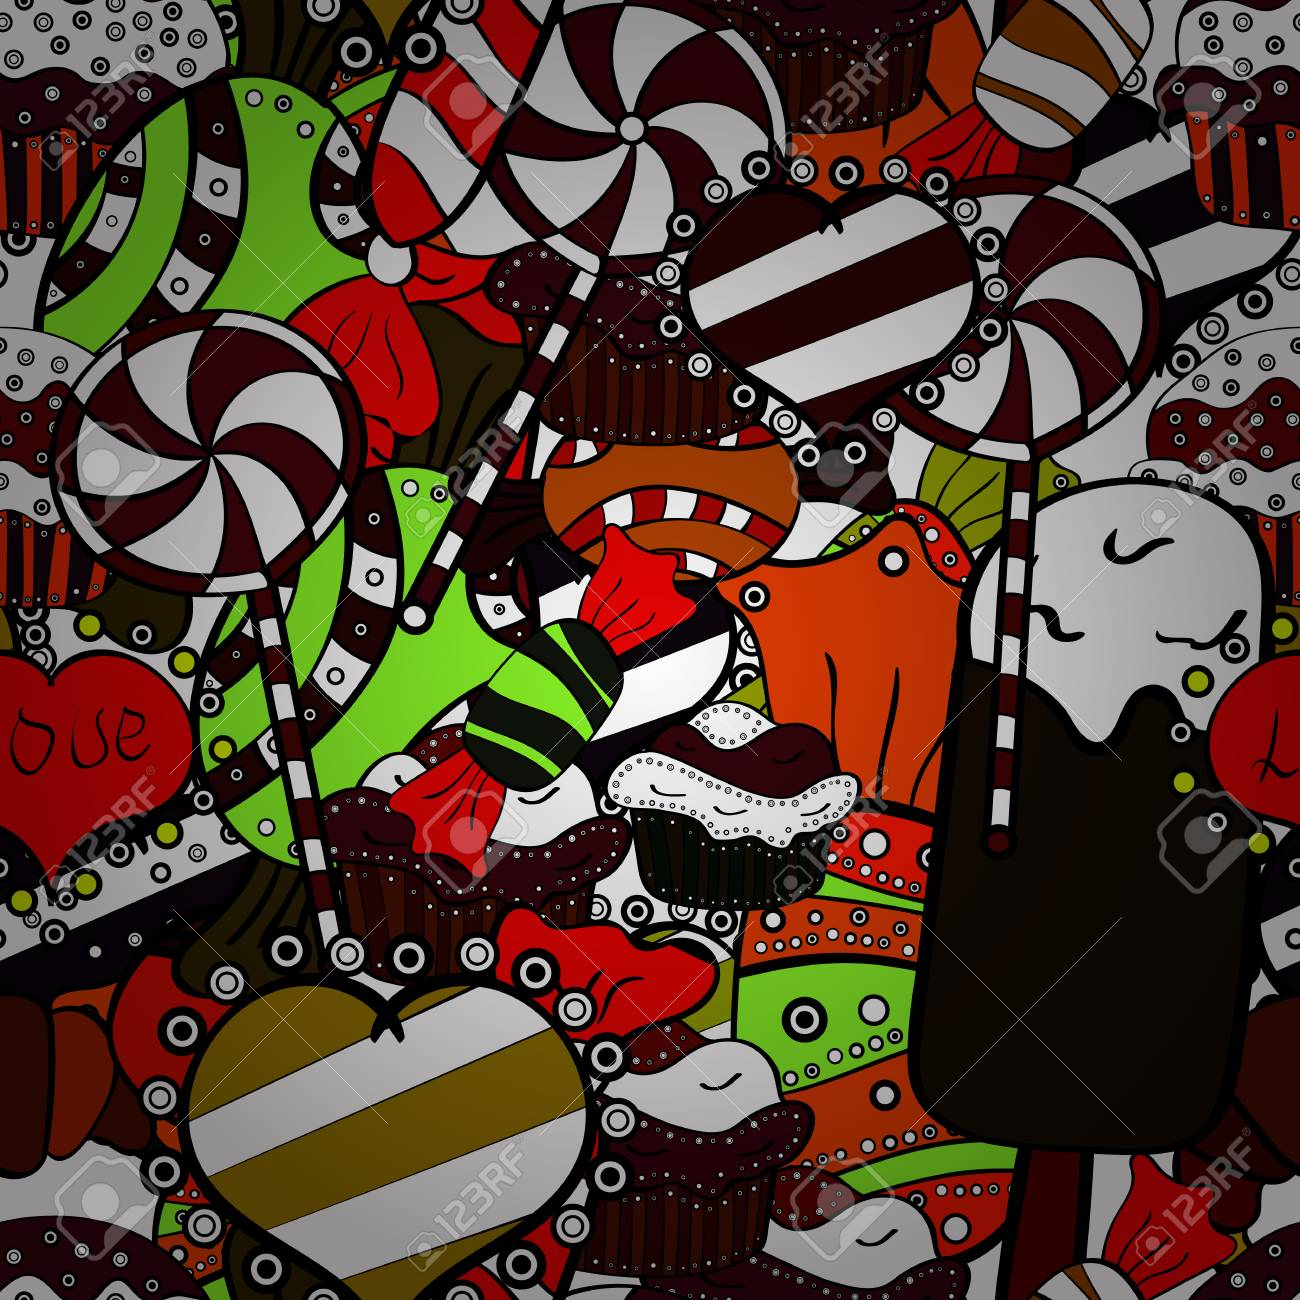 Christmas Graffiti Background.Christmas Vector Seamless Pattern With Candies On Black White